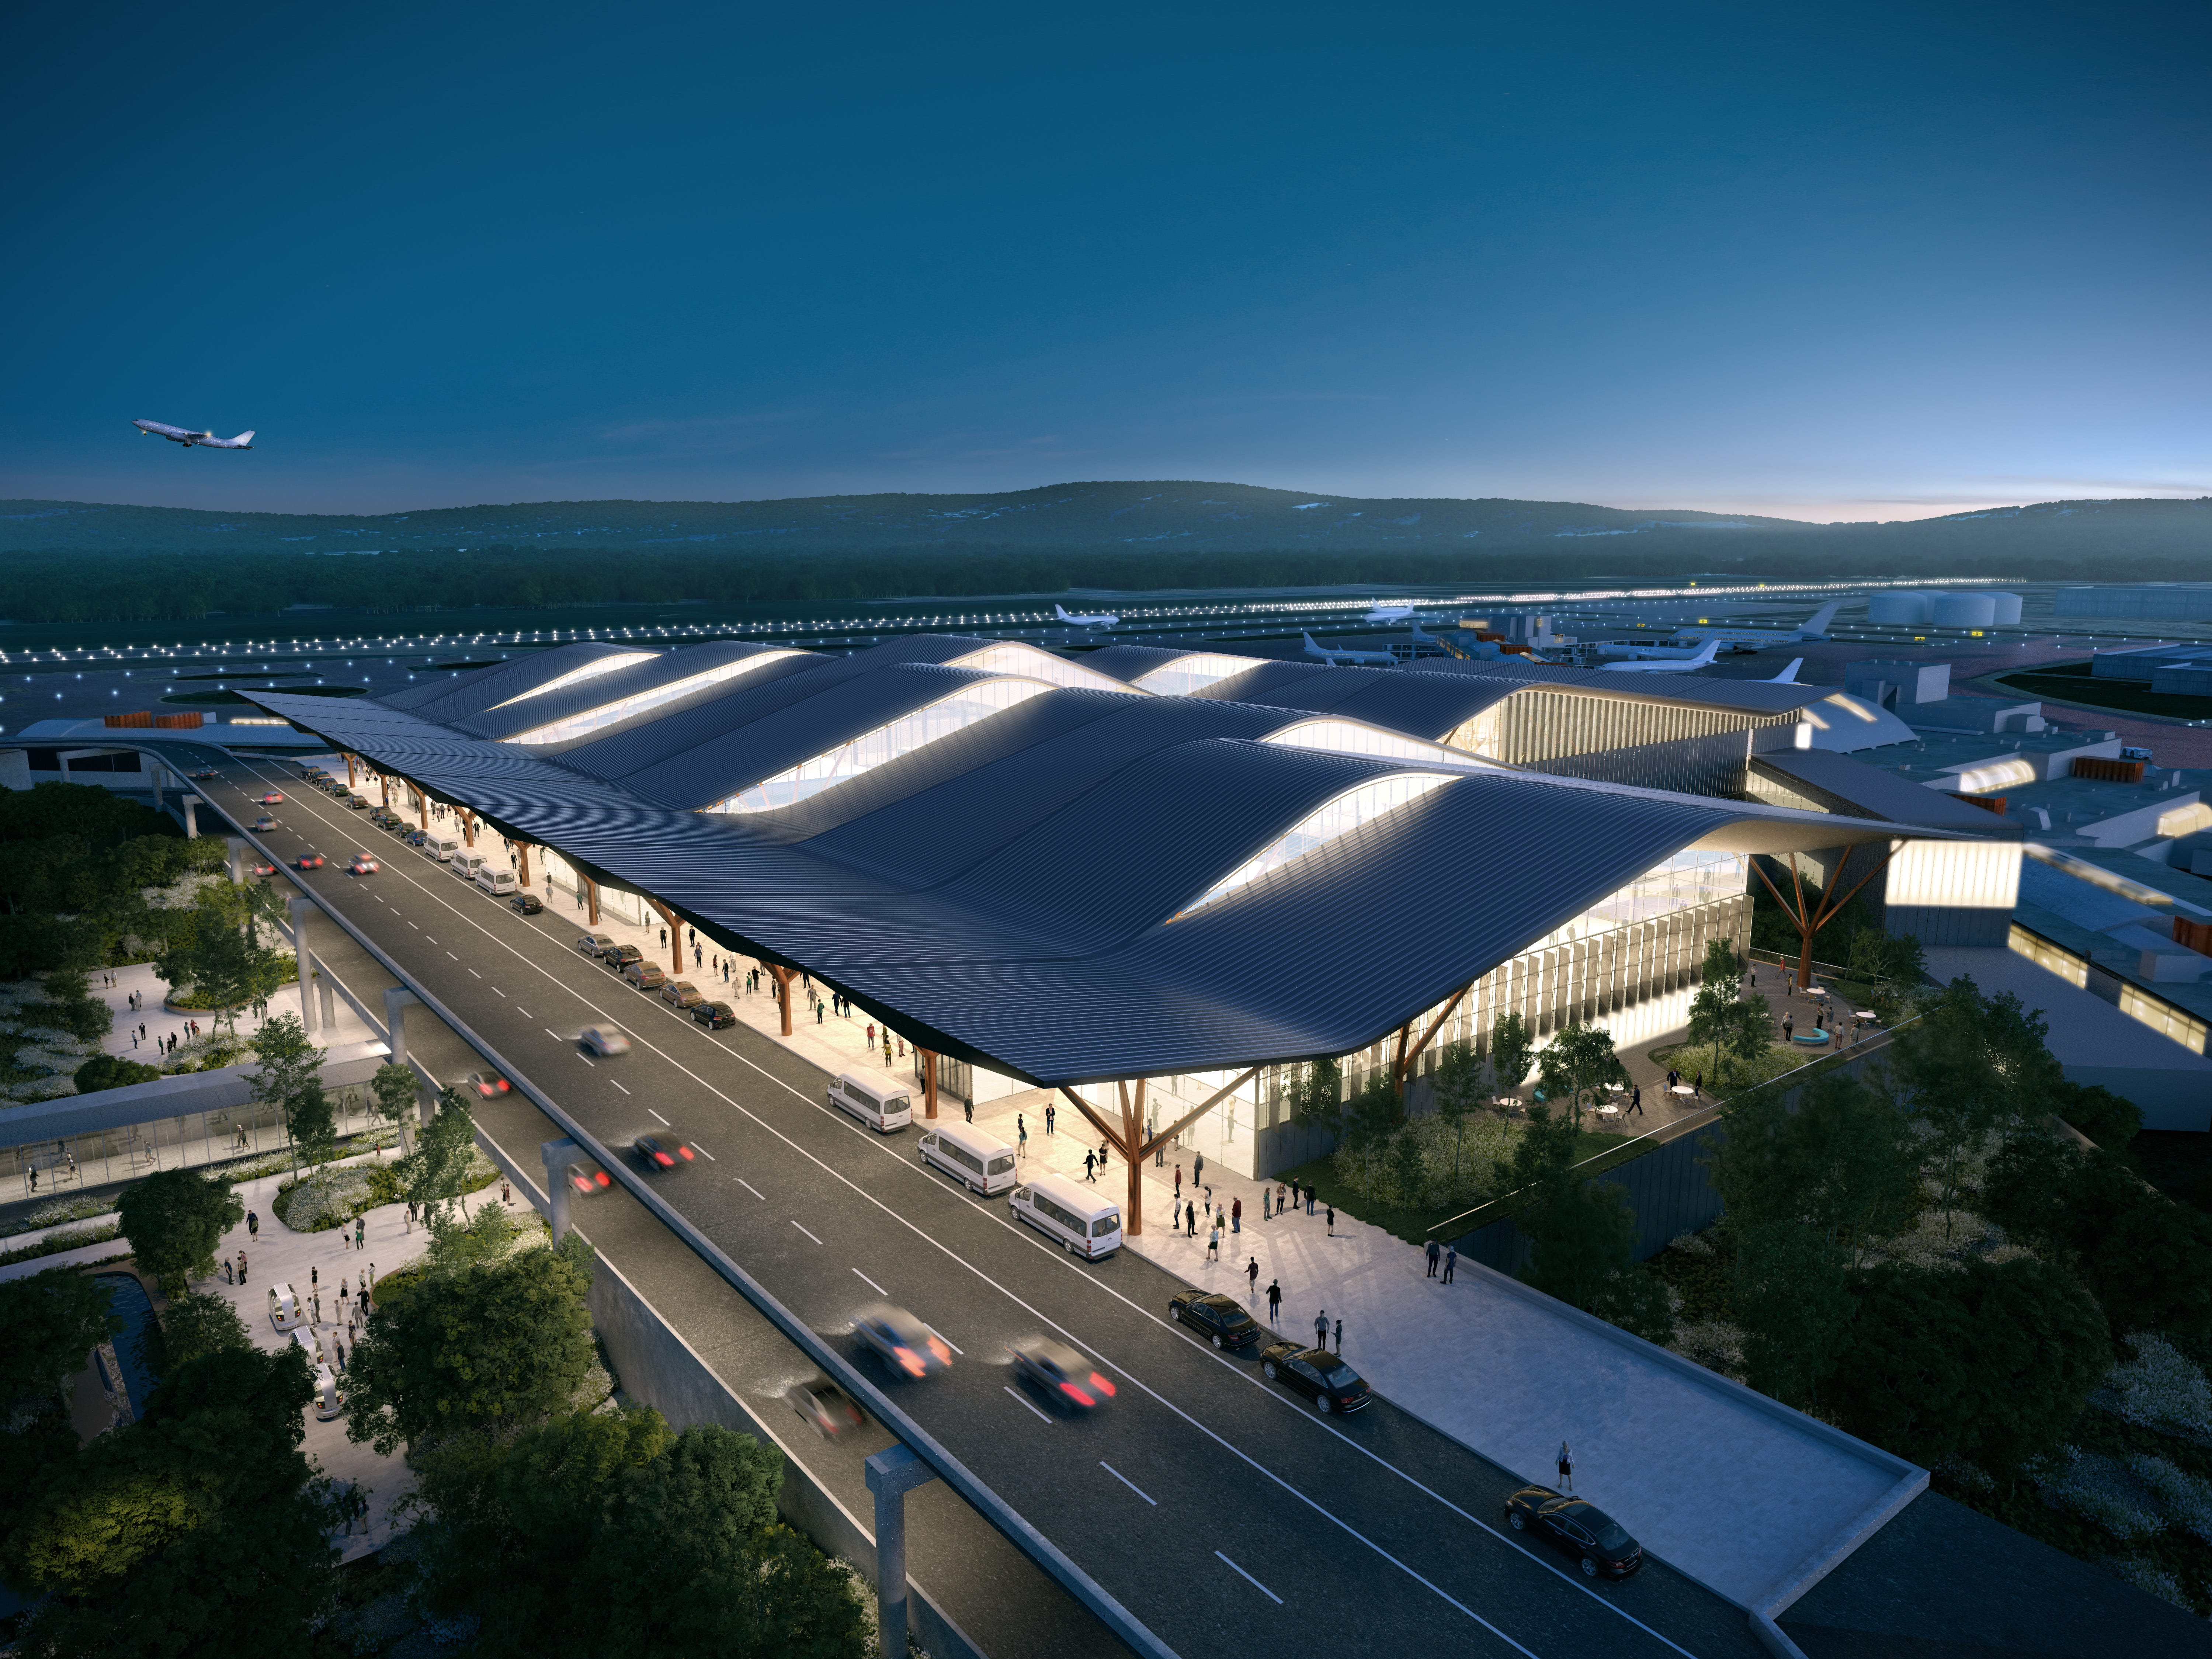 Pittsburgh's airport shows off plans for new $1.1 billion terminal